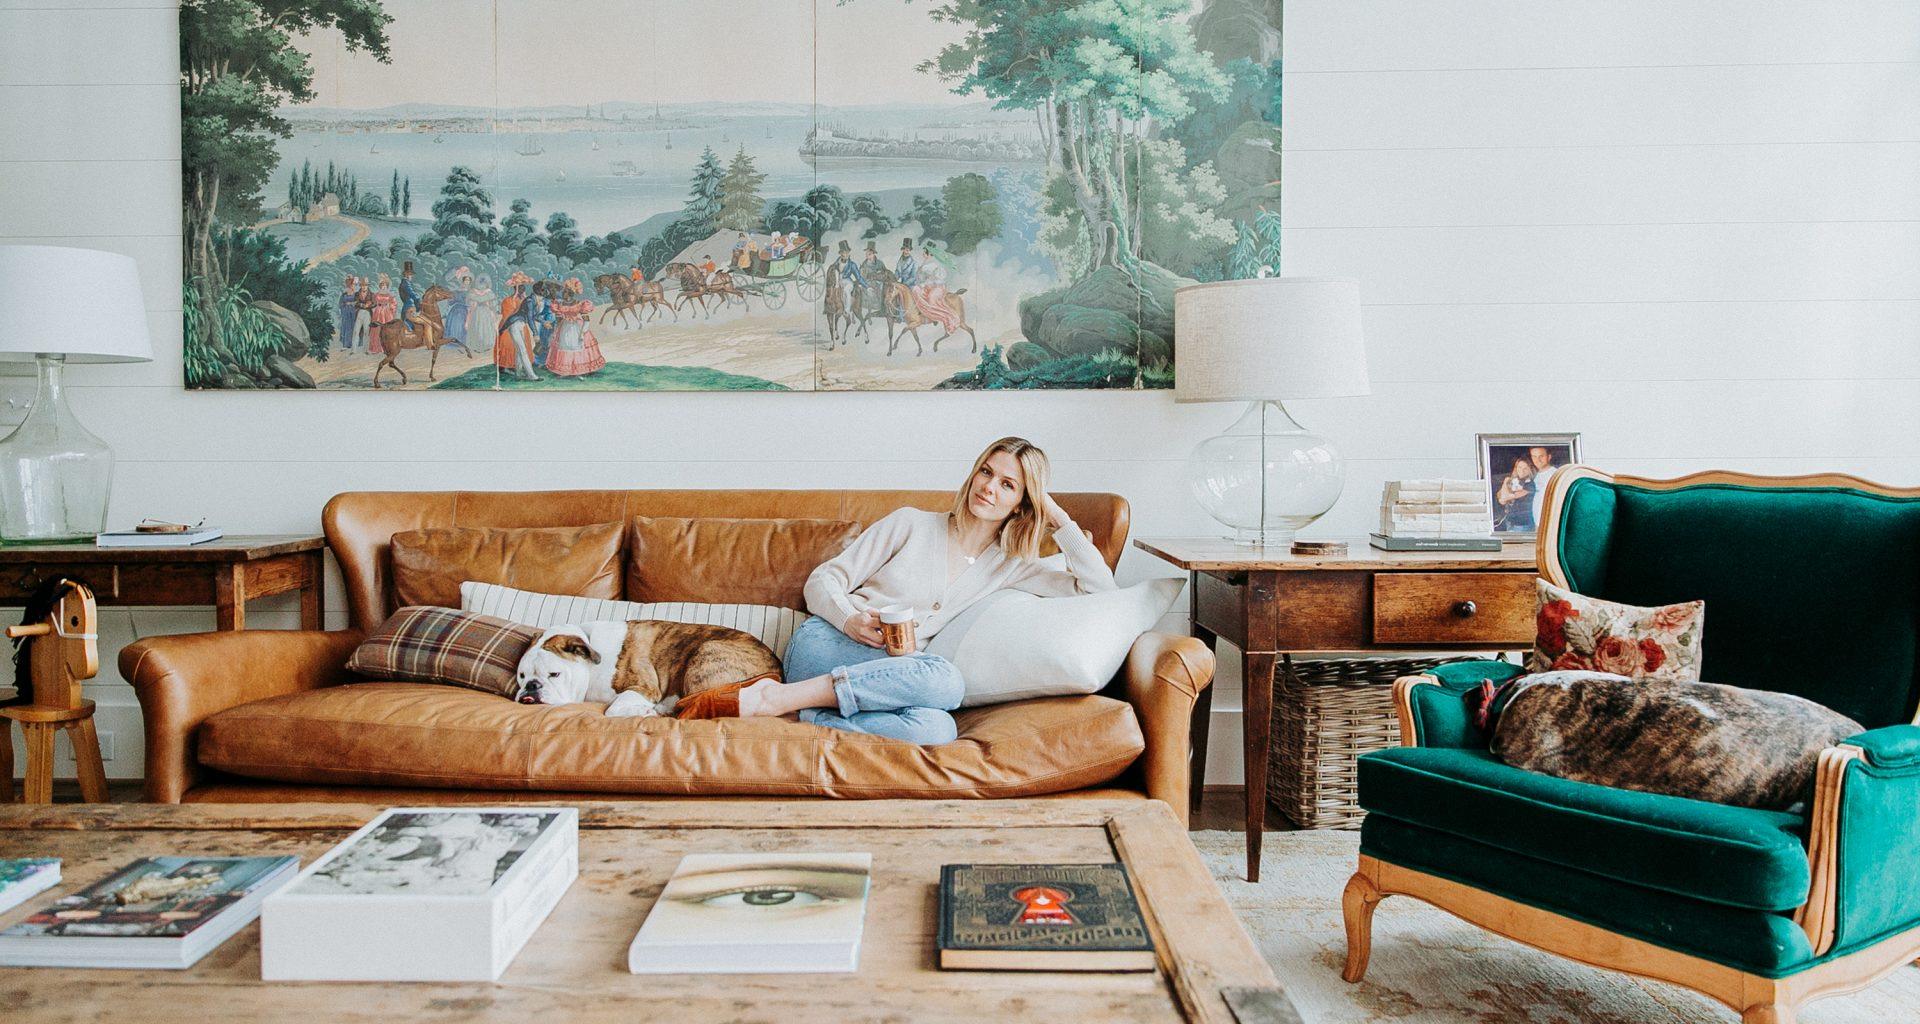 Design Lessons from Brooklyn Decker's Lakeside Home